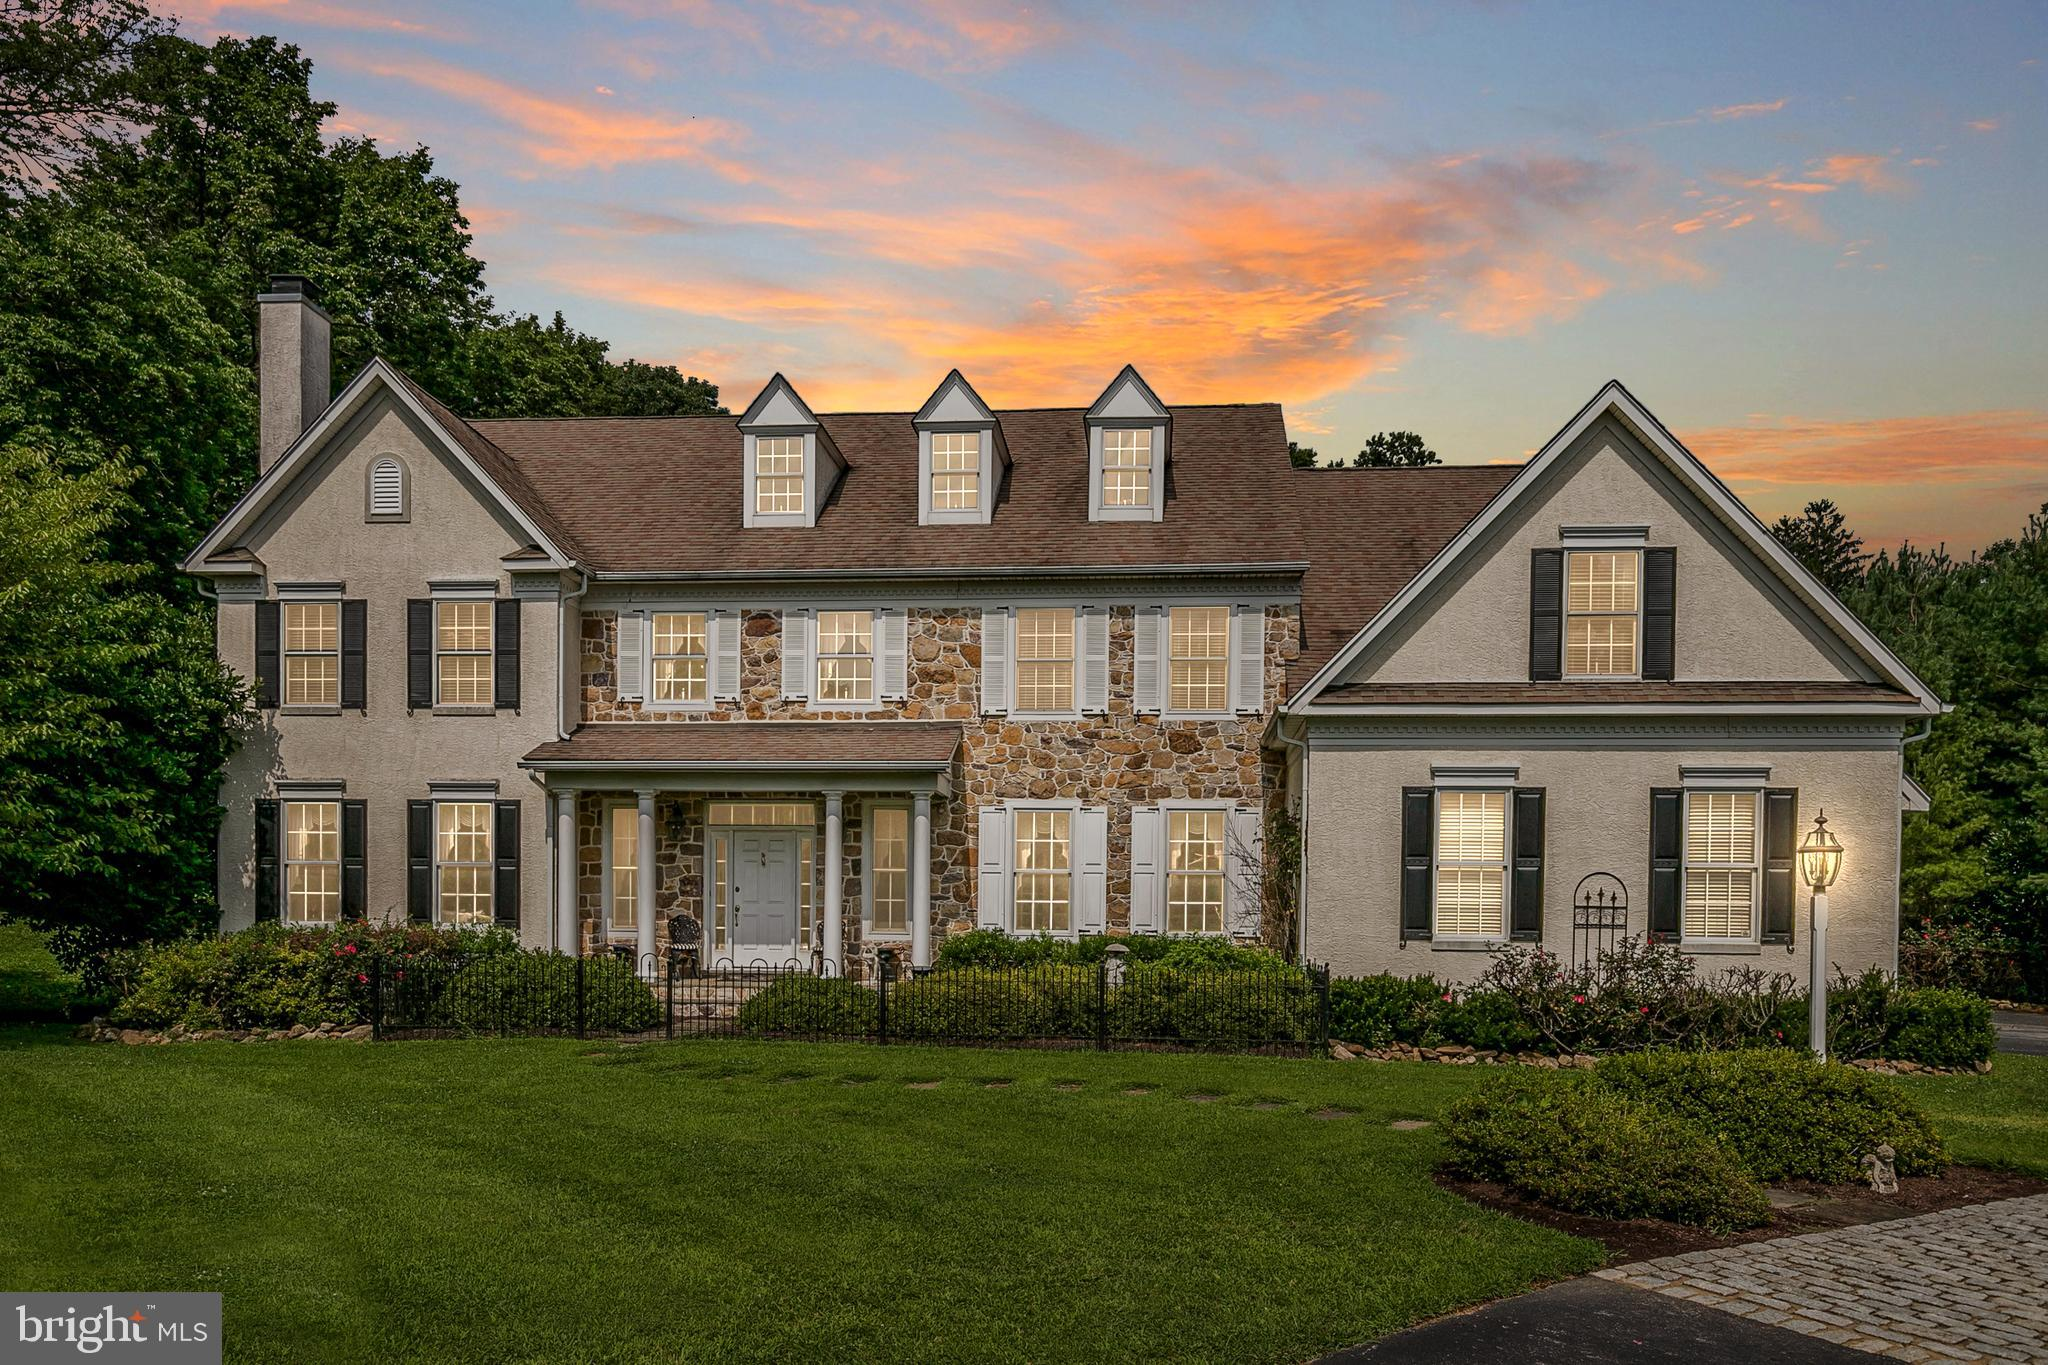 20 LILY POND LANE, CHESTER SPRINGS, PA 19425